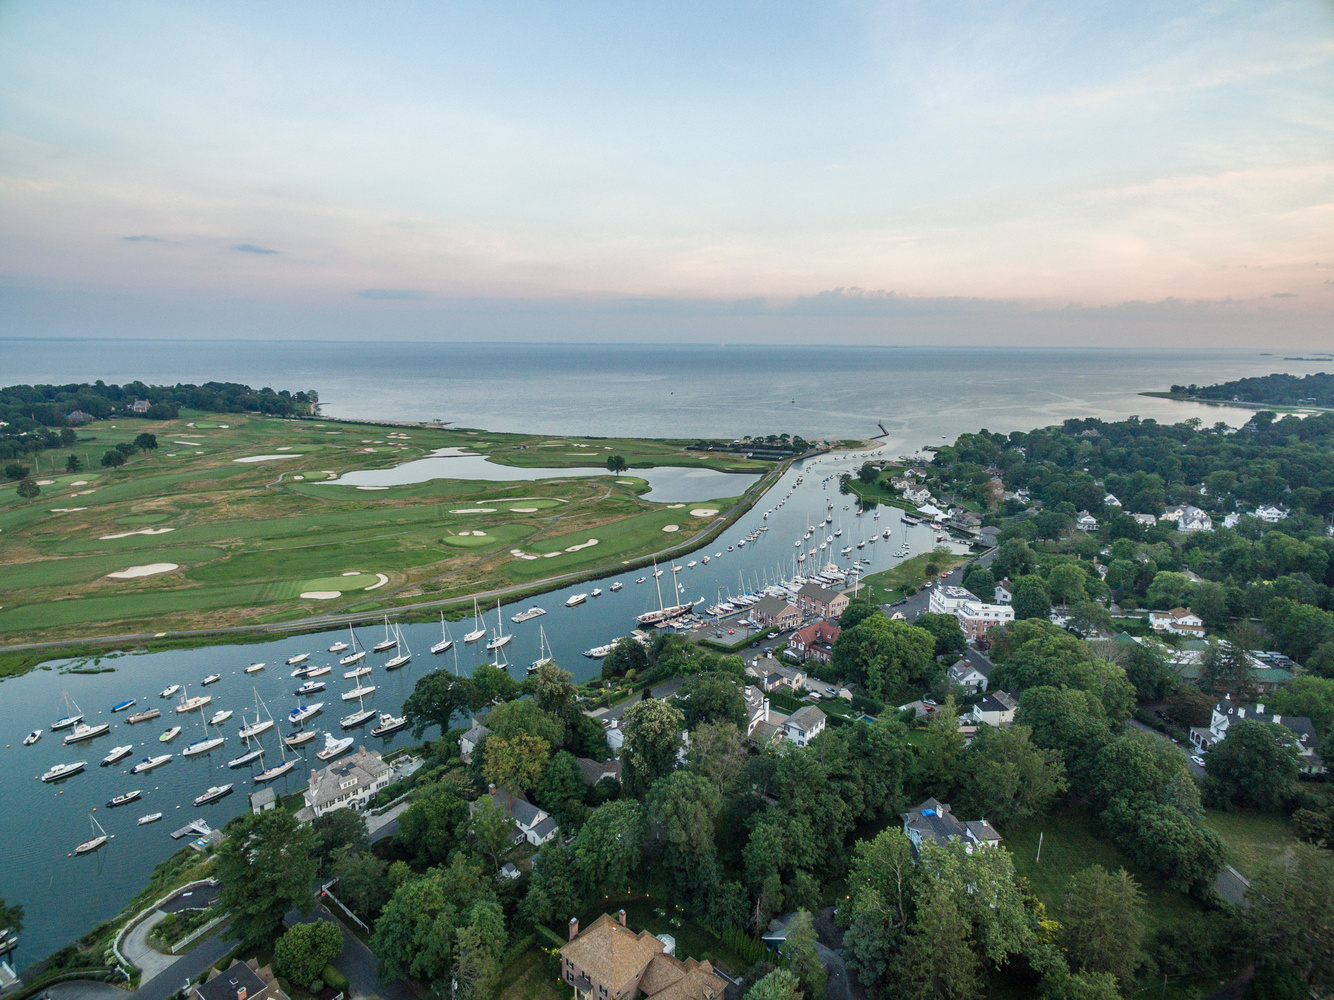 DJI Inspire 1 - Southport Harbor by Dave Curtis